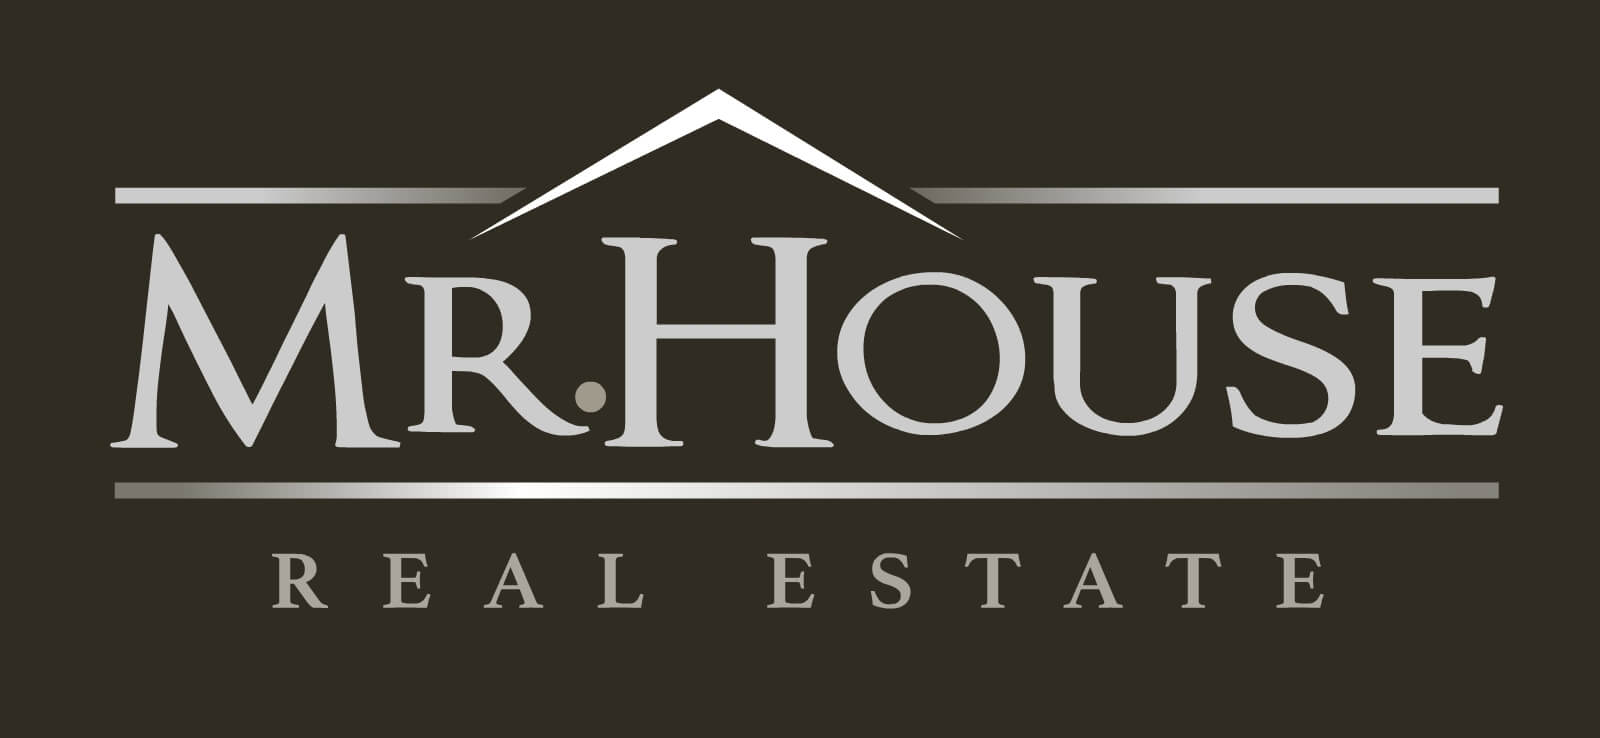 Logotipo diseñado para Mr. House